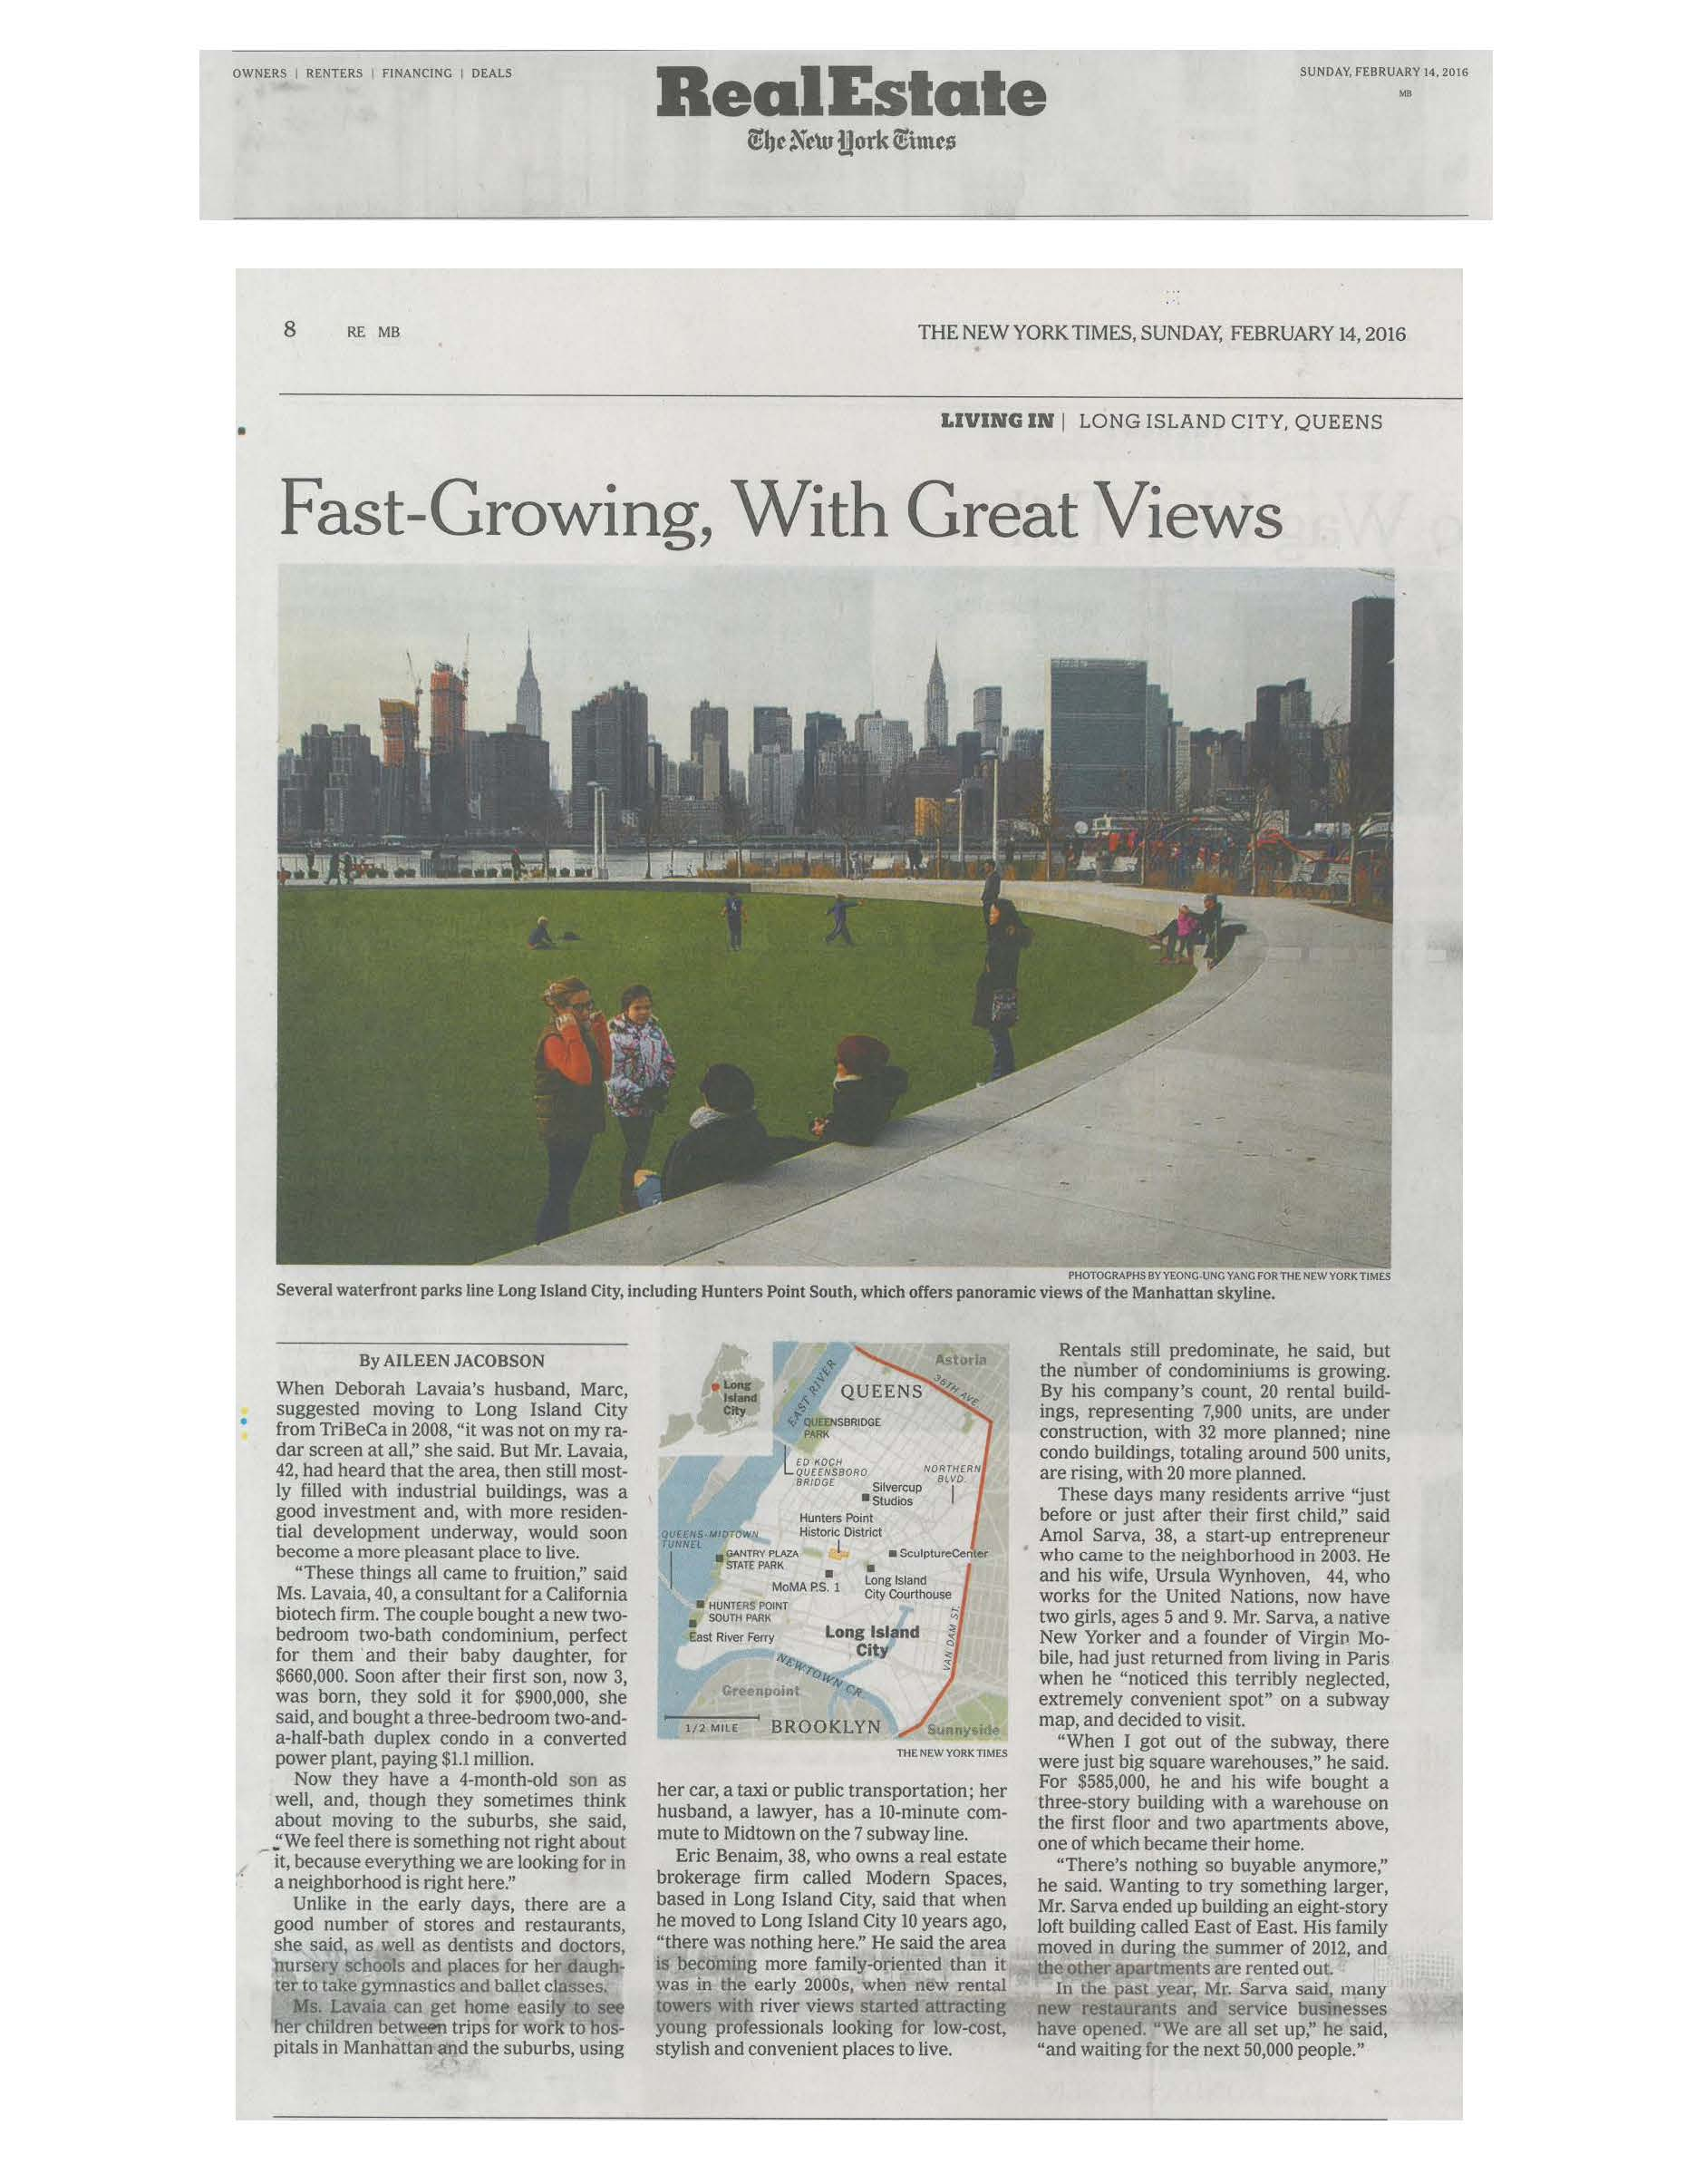 The New York Times - Fast-Growing, With Great Views - 02.14.16_Page_1